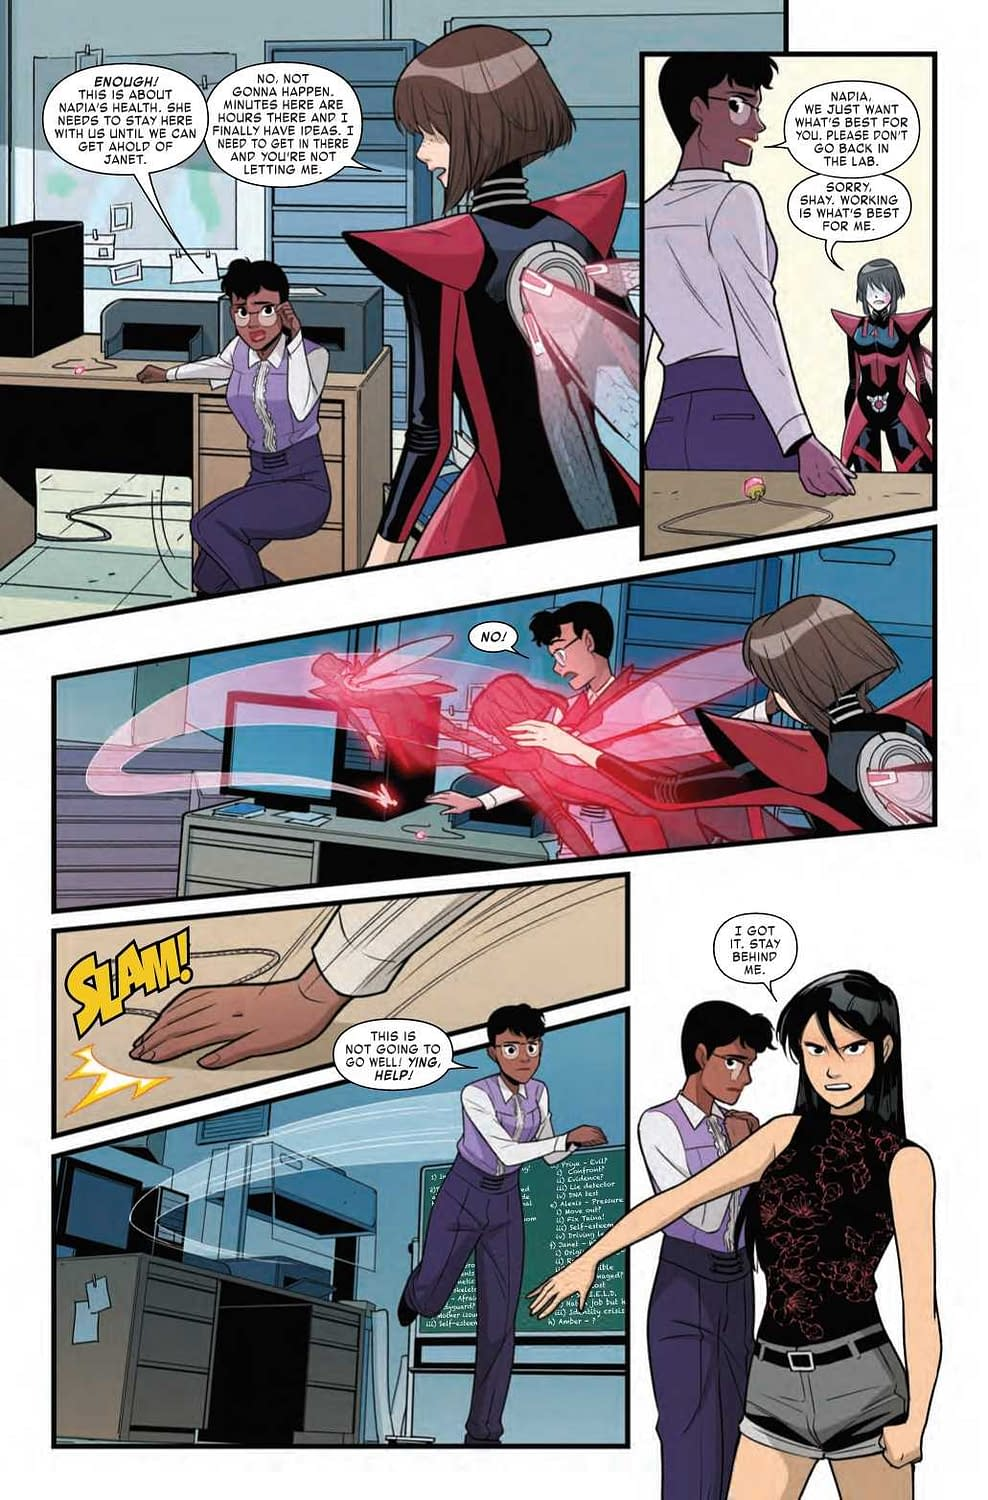 Nadia Has a Hank Pym Style Freakout in Next Week's Unstoppable Wasp #5 (Preview)